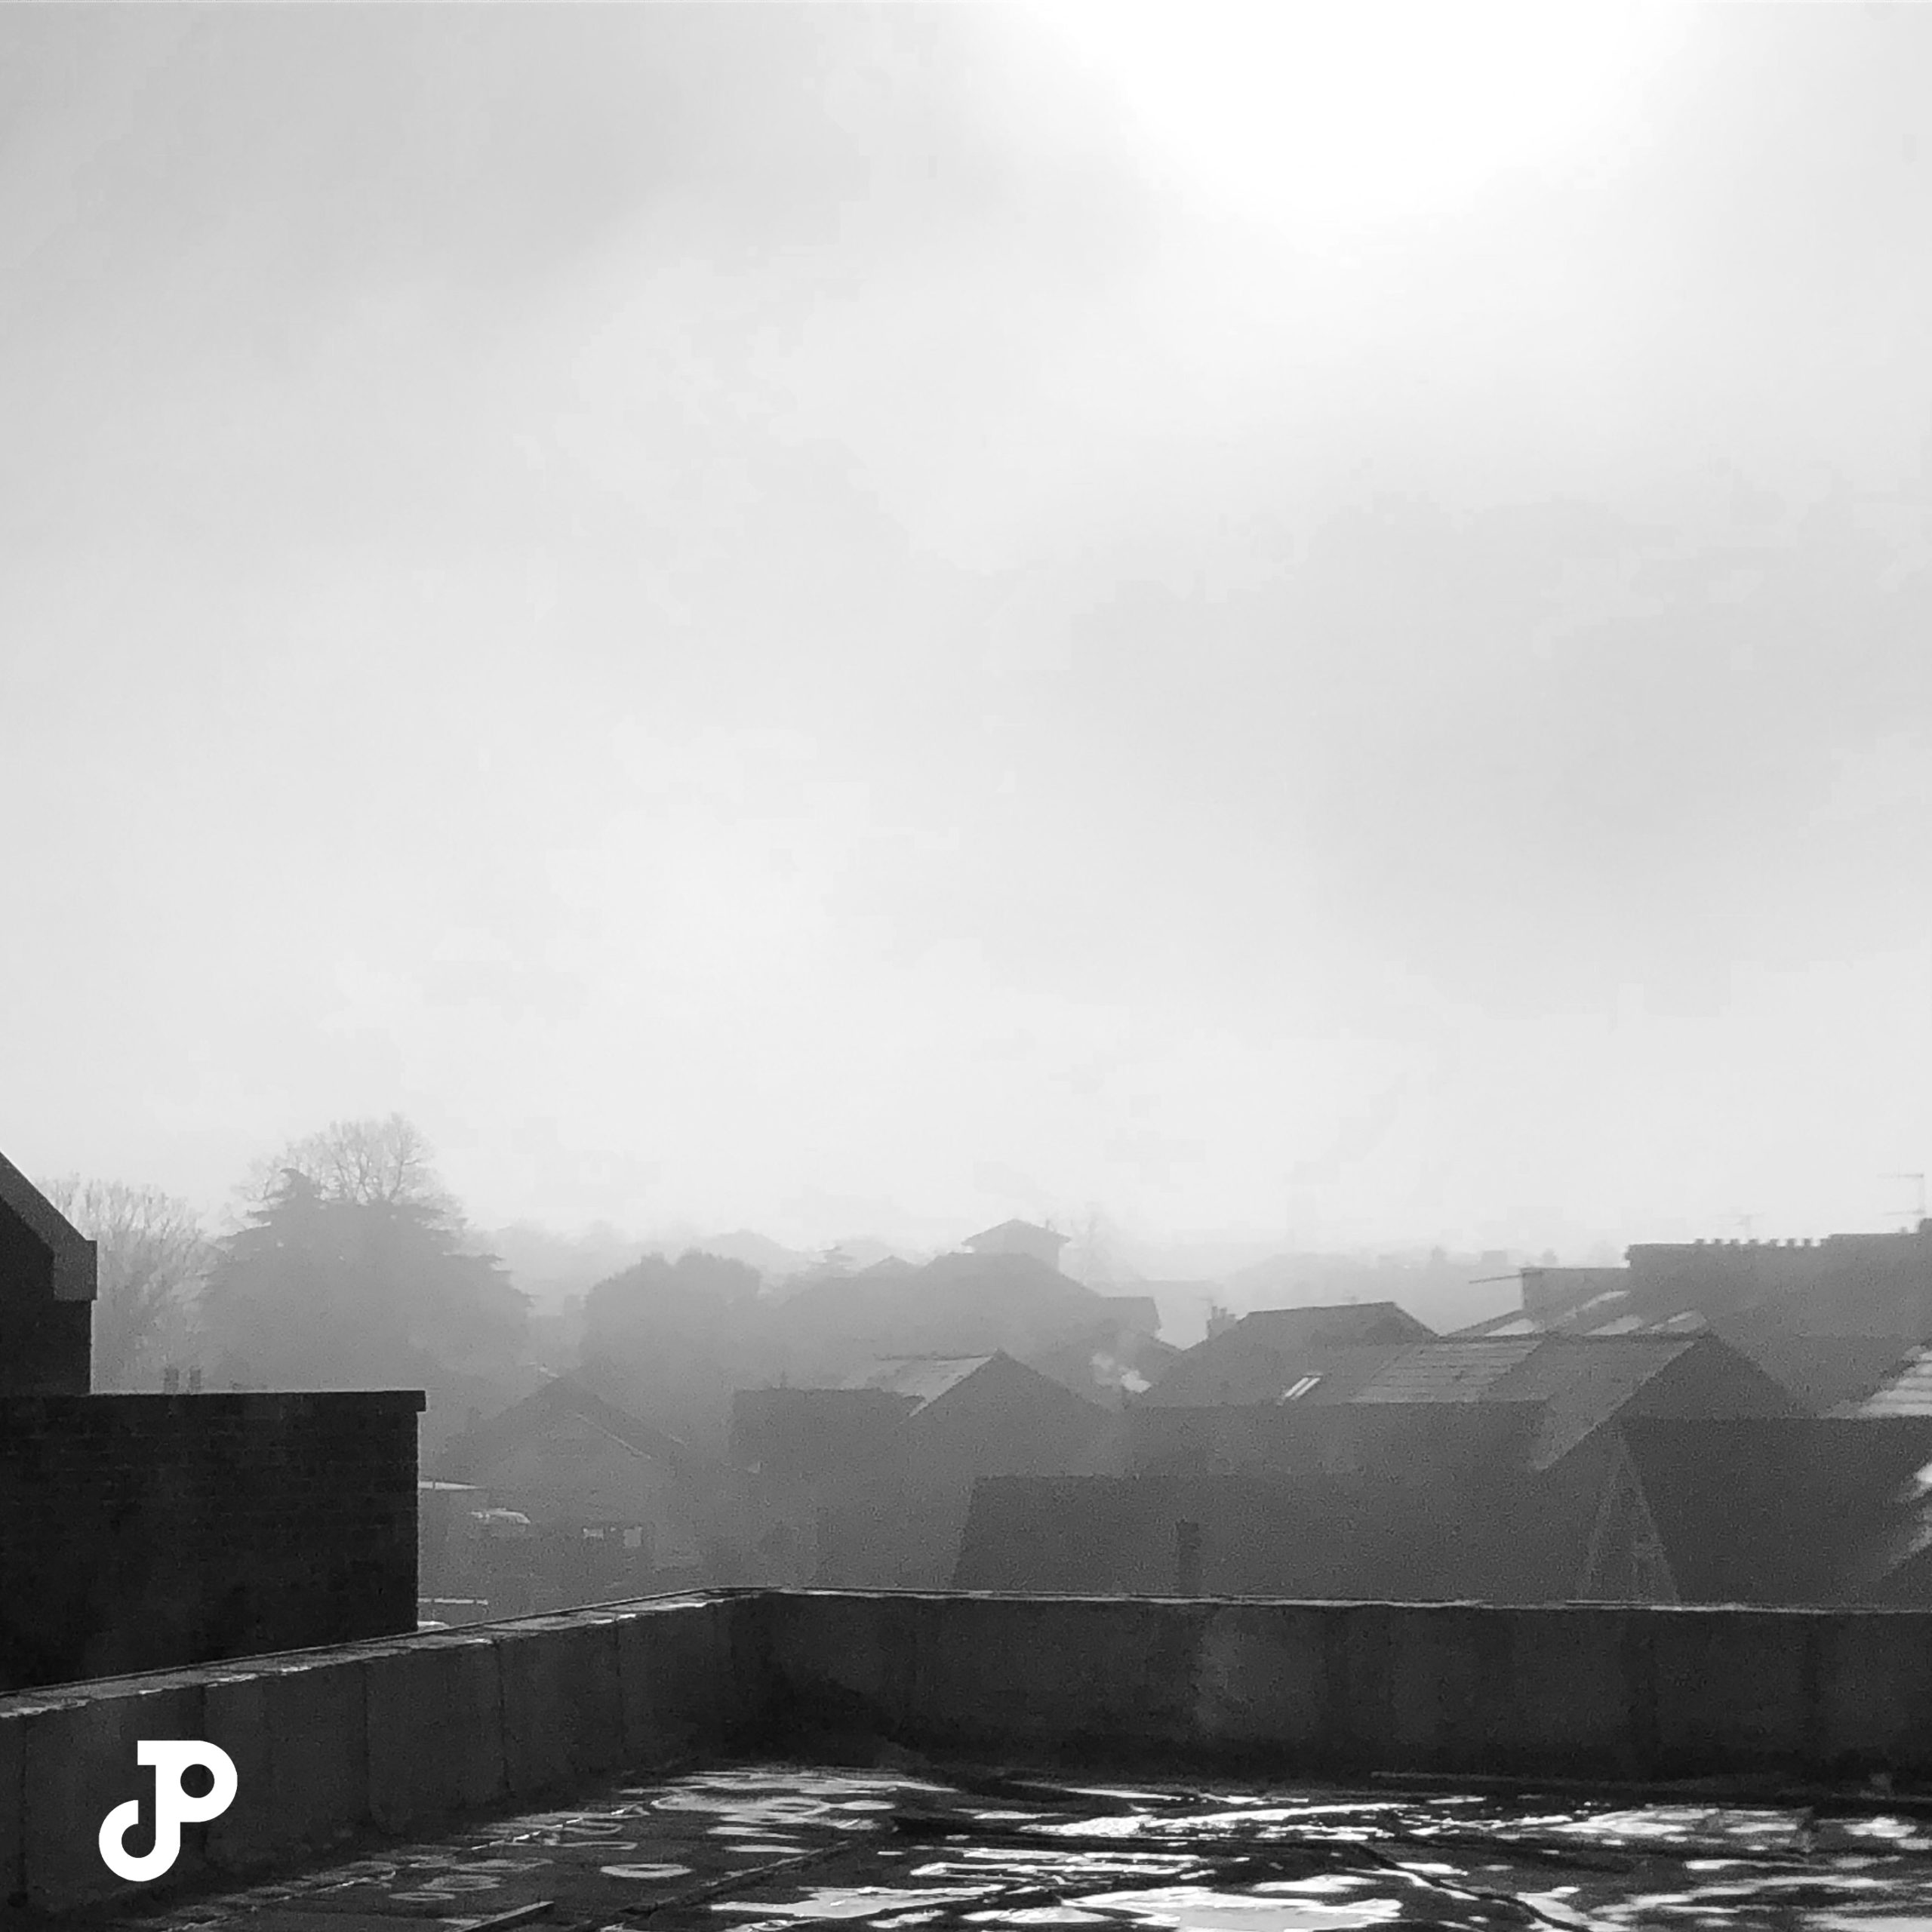 rooftops on a foggy, overcast day in Kingston Upon Thames